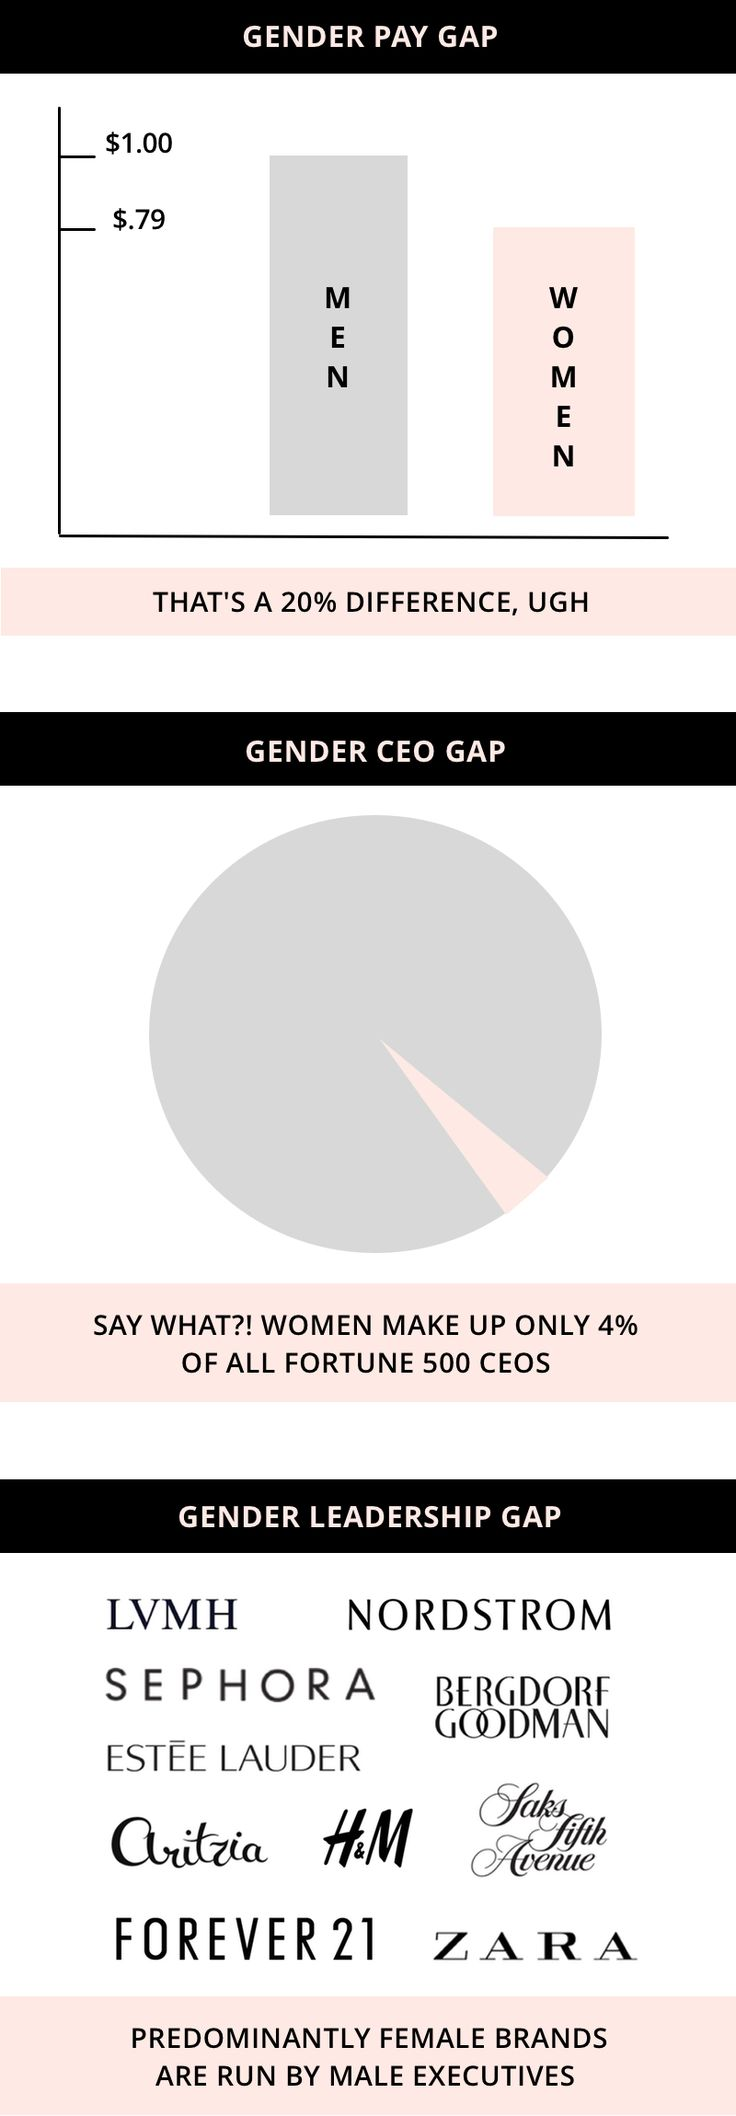 best ideas about gender pay gap equal pay 17 best ideas about gender pay gap equal pay womens rights feminism and gender inequality